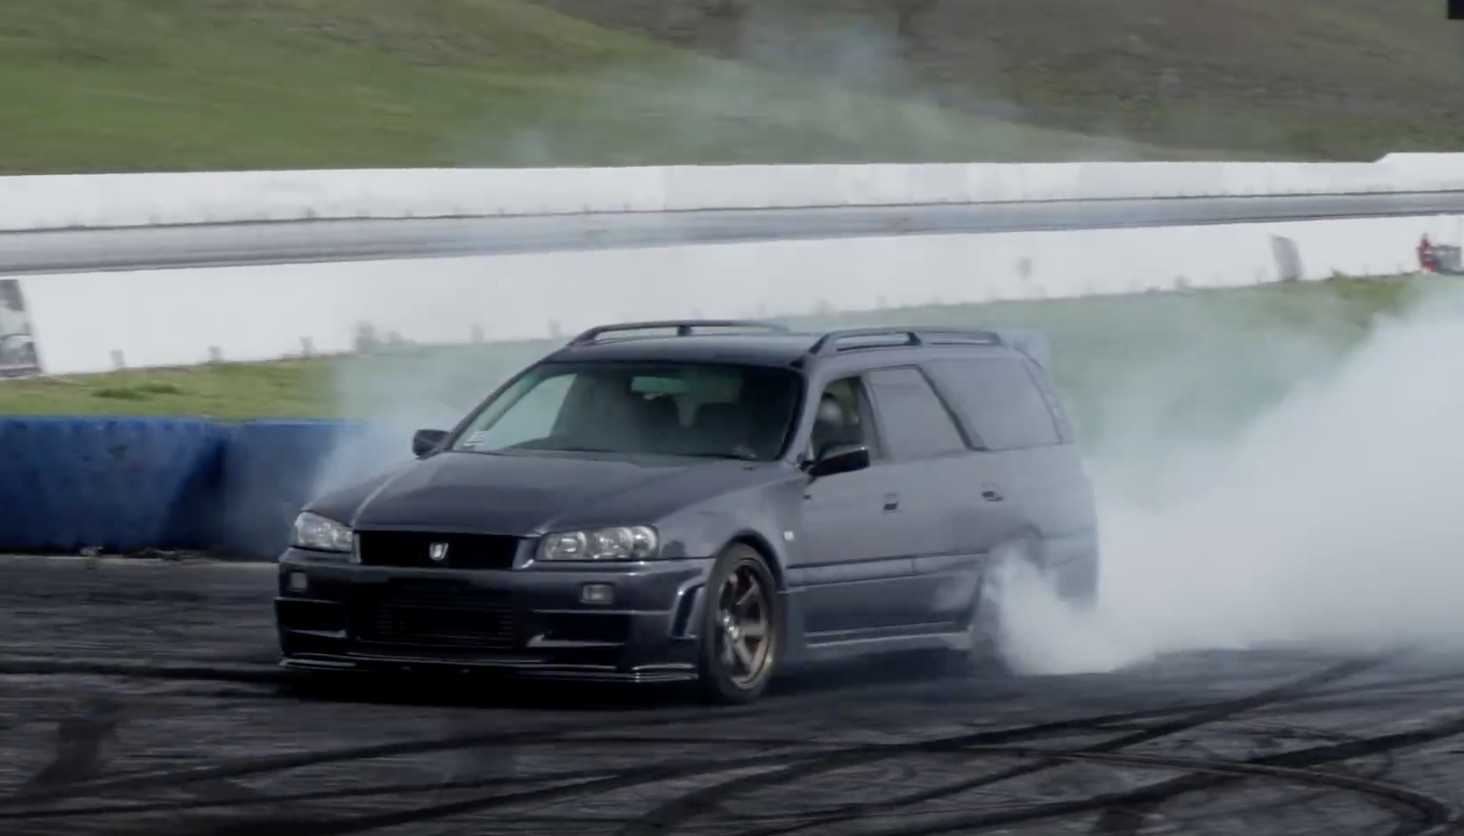 A Rodeo With A Double Unicorn: Getting The Turbo V8 Nissan Stagea Wound Up On The Skidpad!